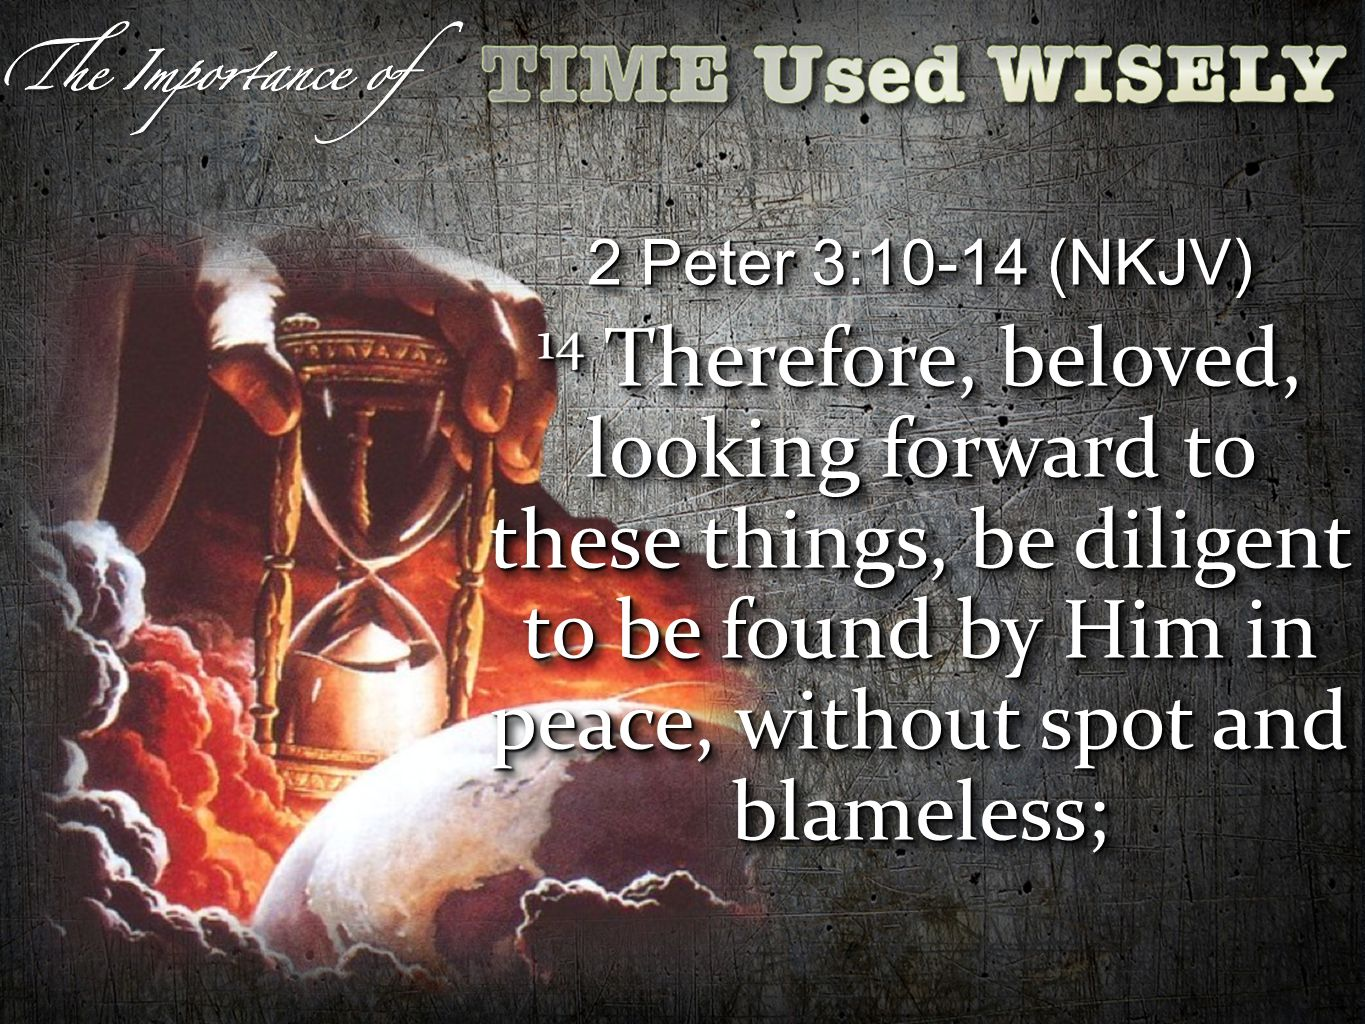 2 Peter 3:10-14 (NKJV) 14 Therefore, beloved, looking forward to these things, be diligent to be found by Him in peace, without spot and blameless; 2 Peter 3:10-14 (NKJV) 14 Therefore, beloved, looking forward to these things, be diligent to be found by Him in peace, without spot and blameless;